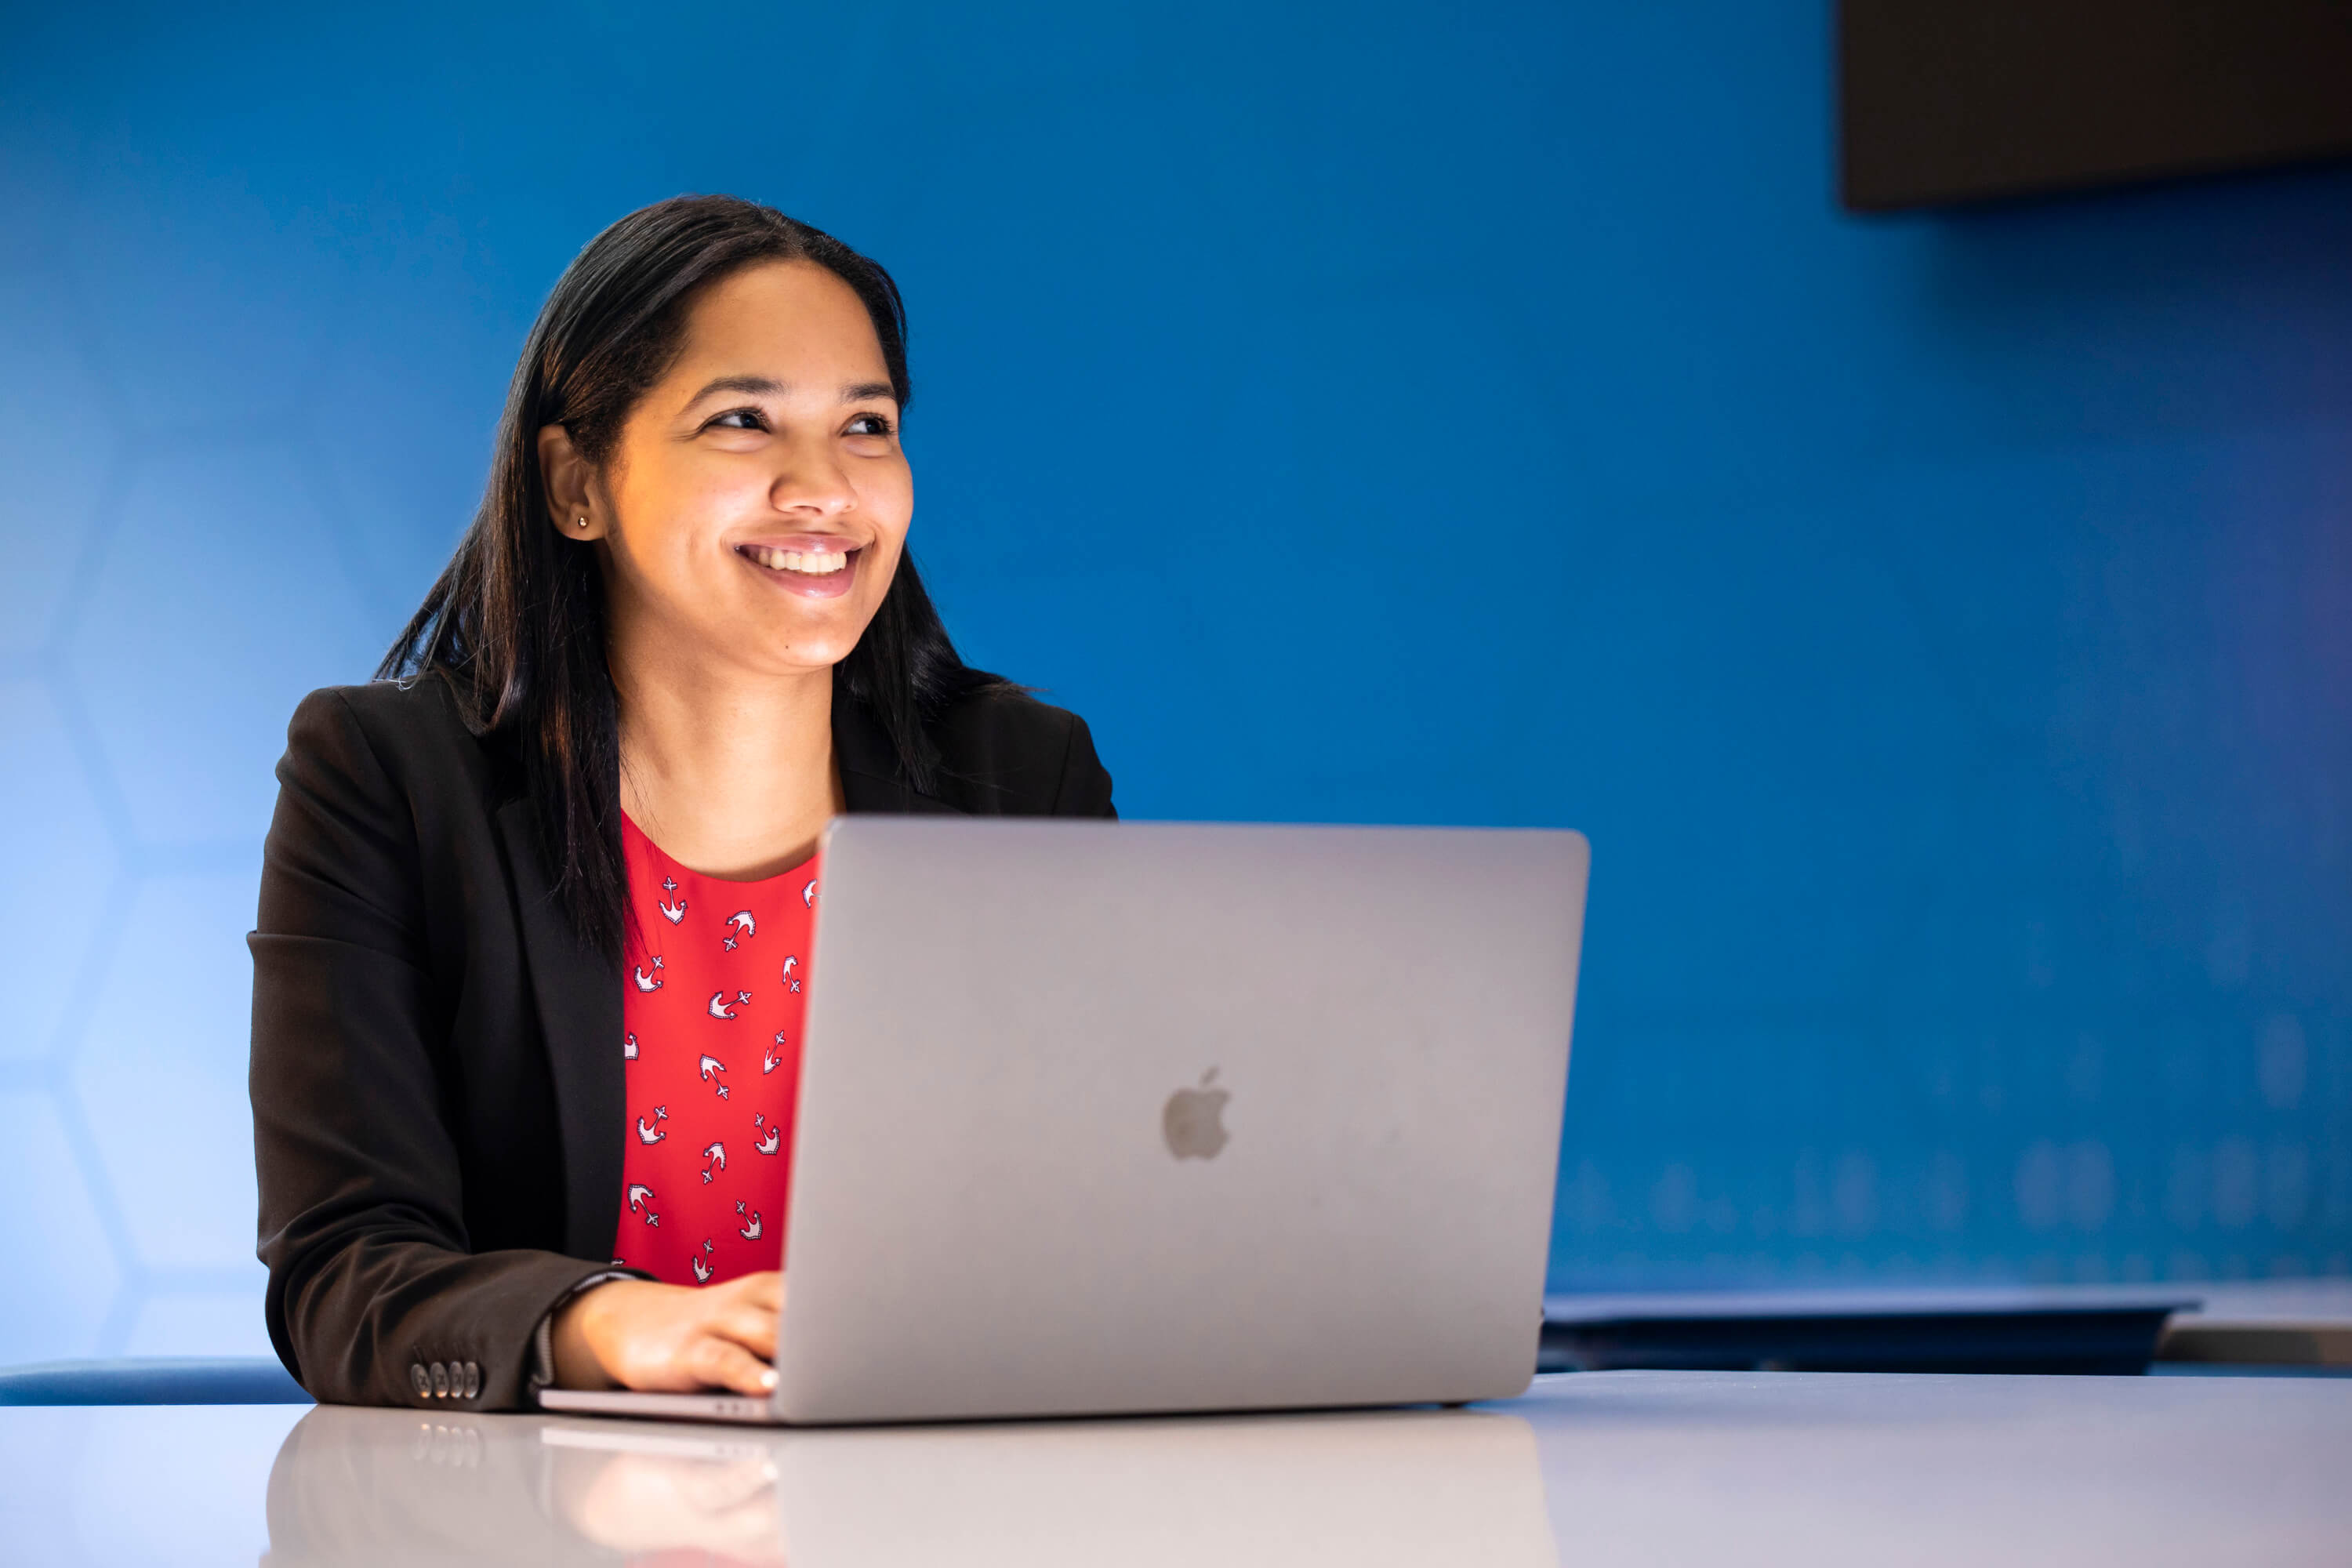 Woman at desk in front of laptop